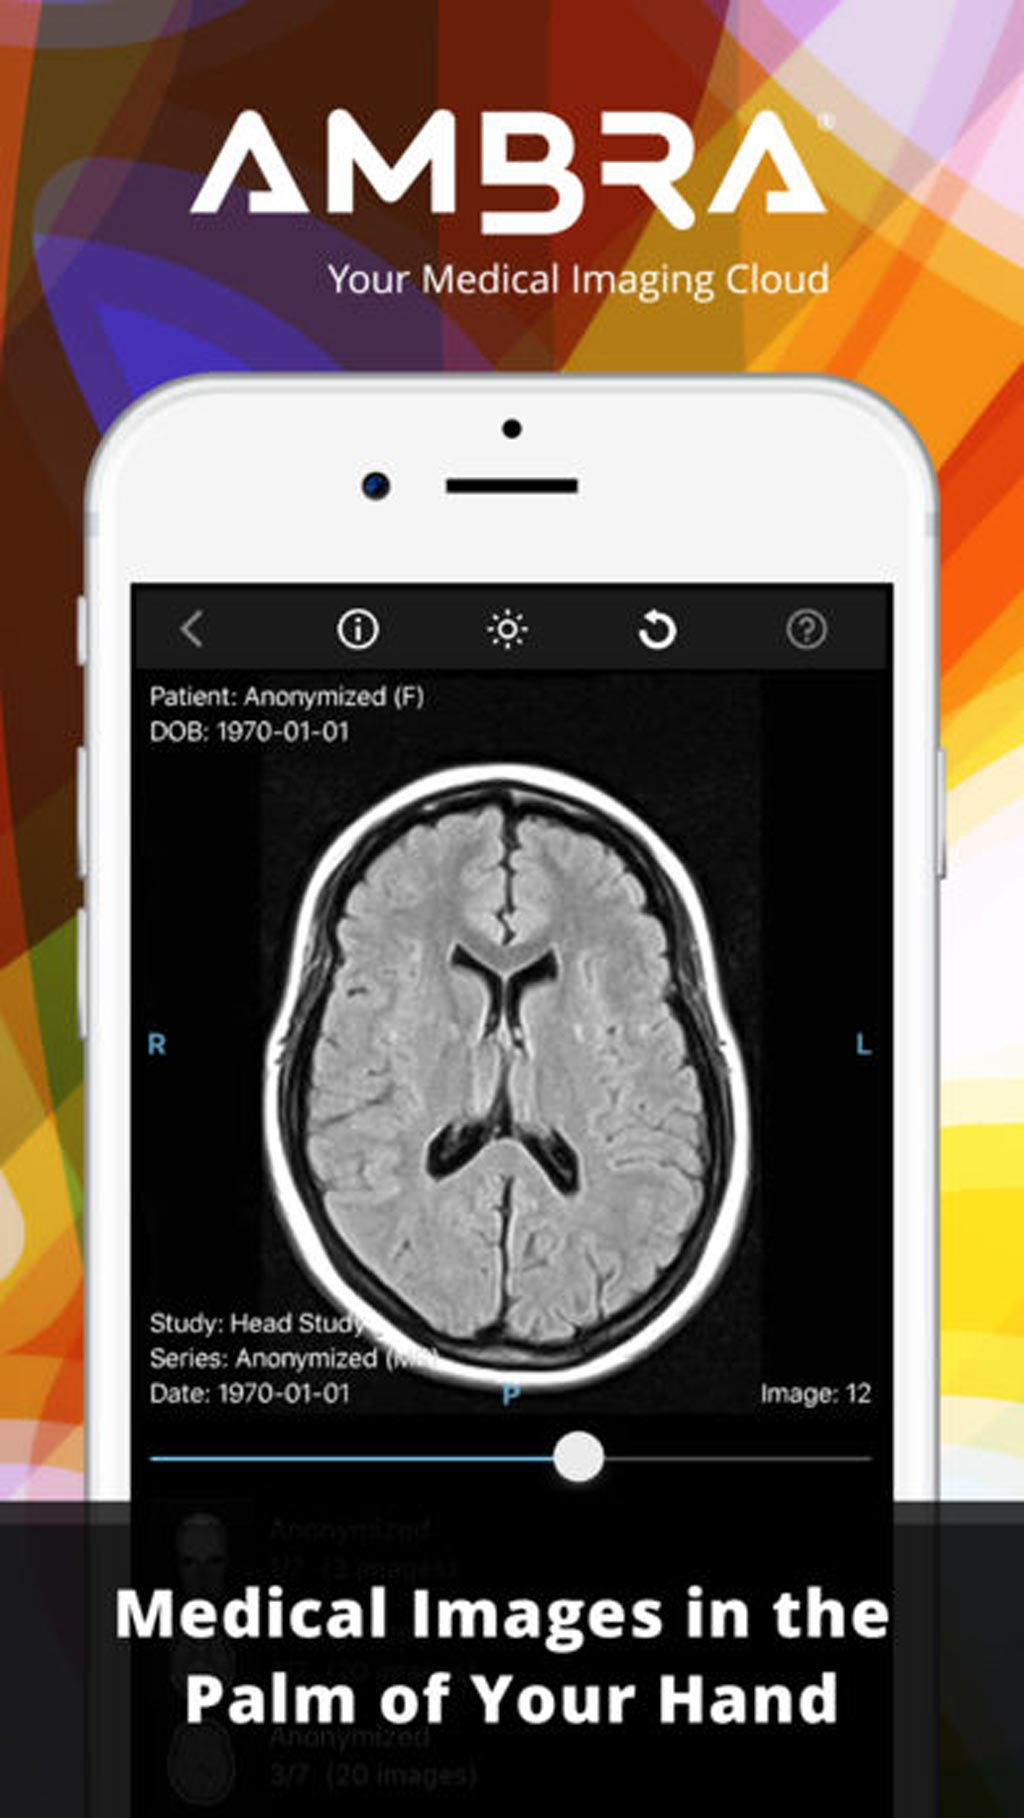 Image: A new app allows medical images to be viewed on an iPhone (Photo courtesy of Ambra Health).